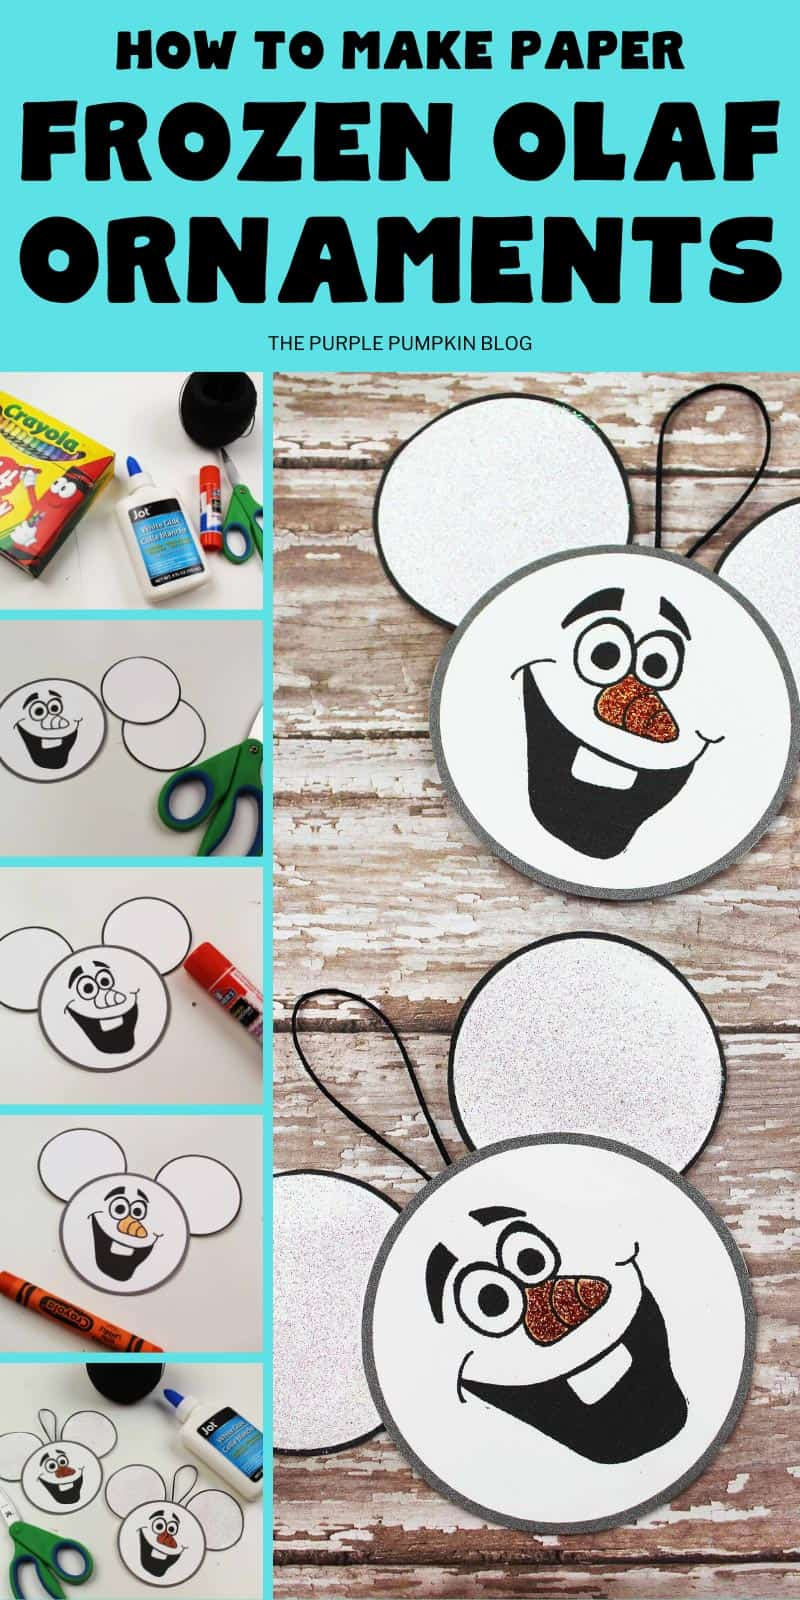 how to make frozen olaf ornaments